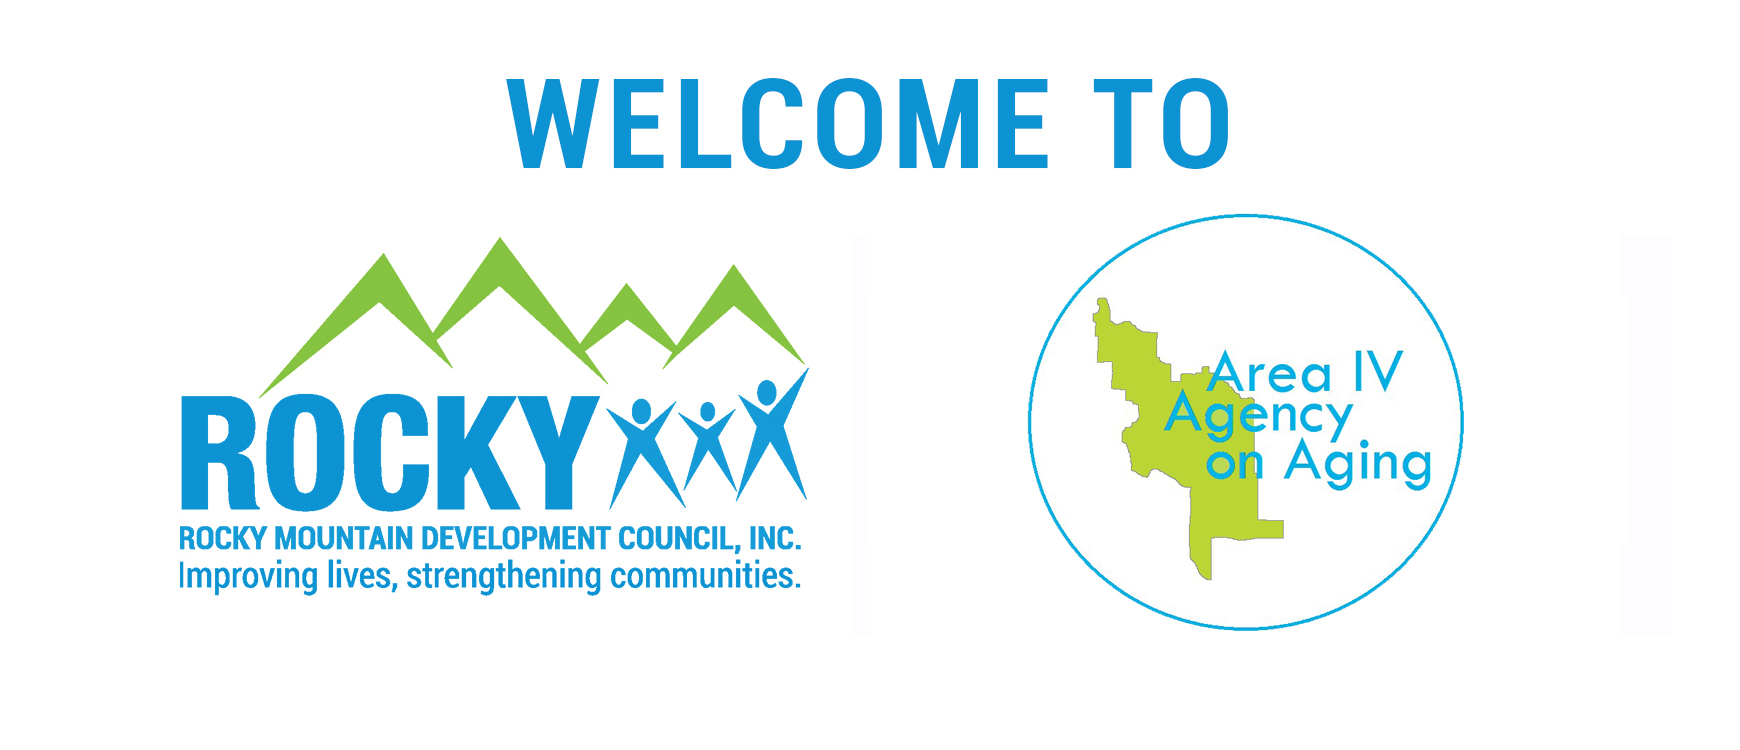 WELCOME TO ROCKY: AREA IV AGENCY ON AGING